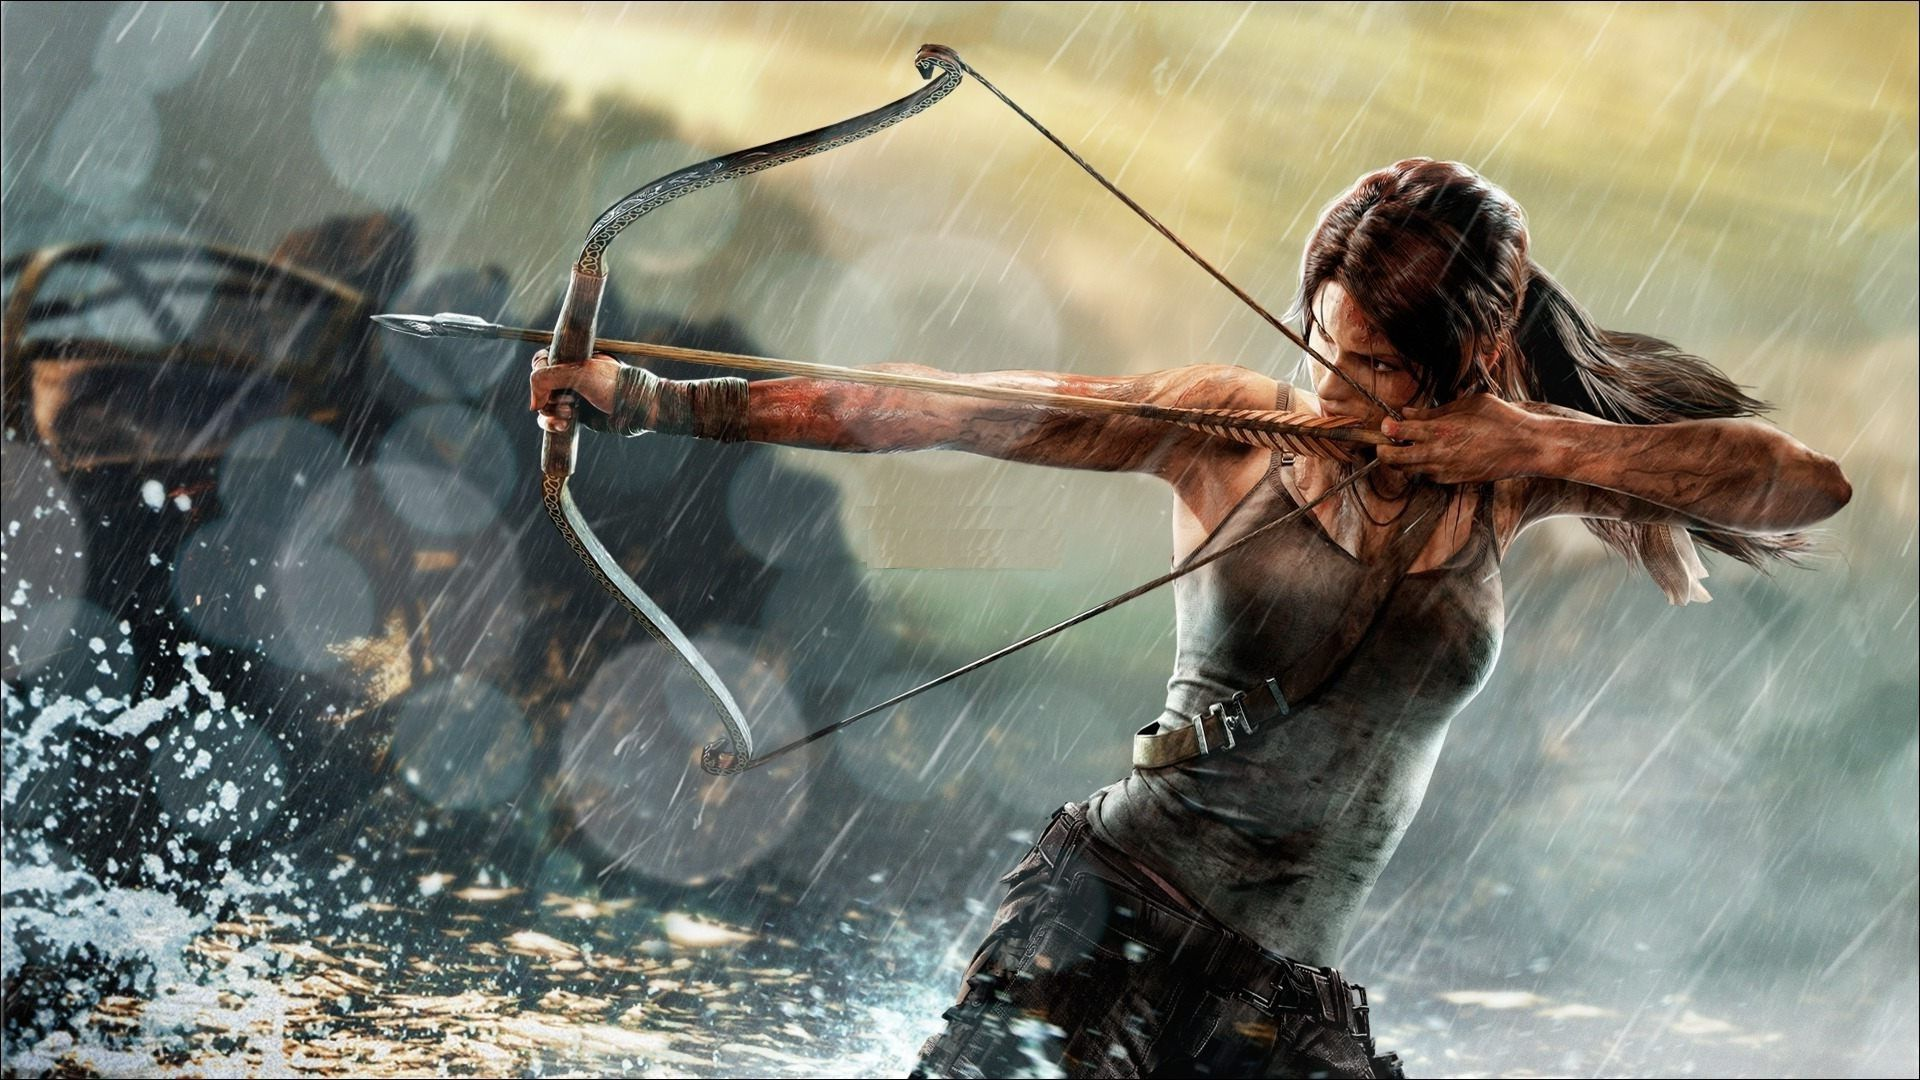 Rise Of The Tomb Raider Hd Wallpapers Get Free Top Quality Rise Of The Tomb Raider Hd Wallpapers For Yo Tomb Raider Tomb Raider Wallpaper Tomb Raider Artwork